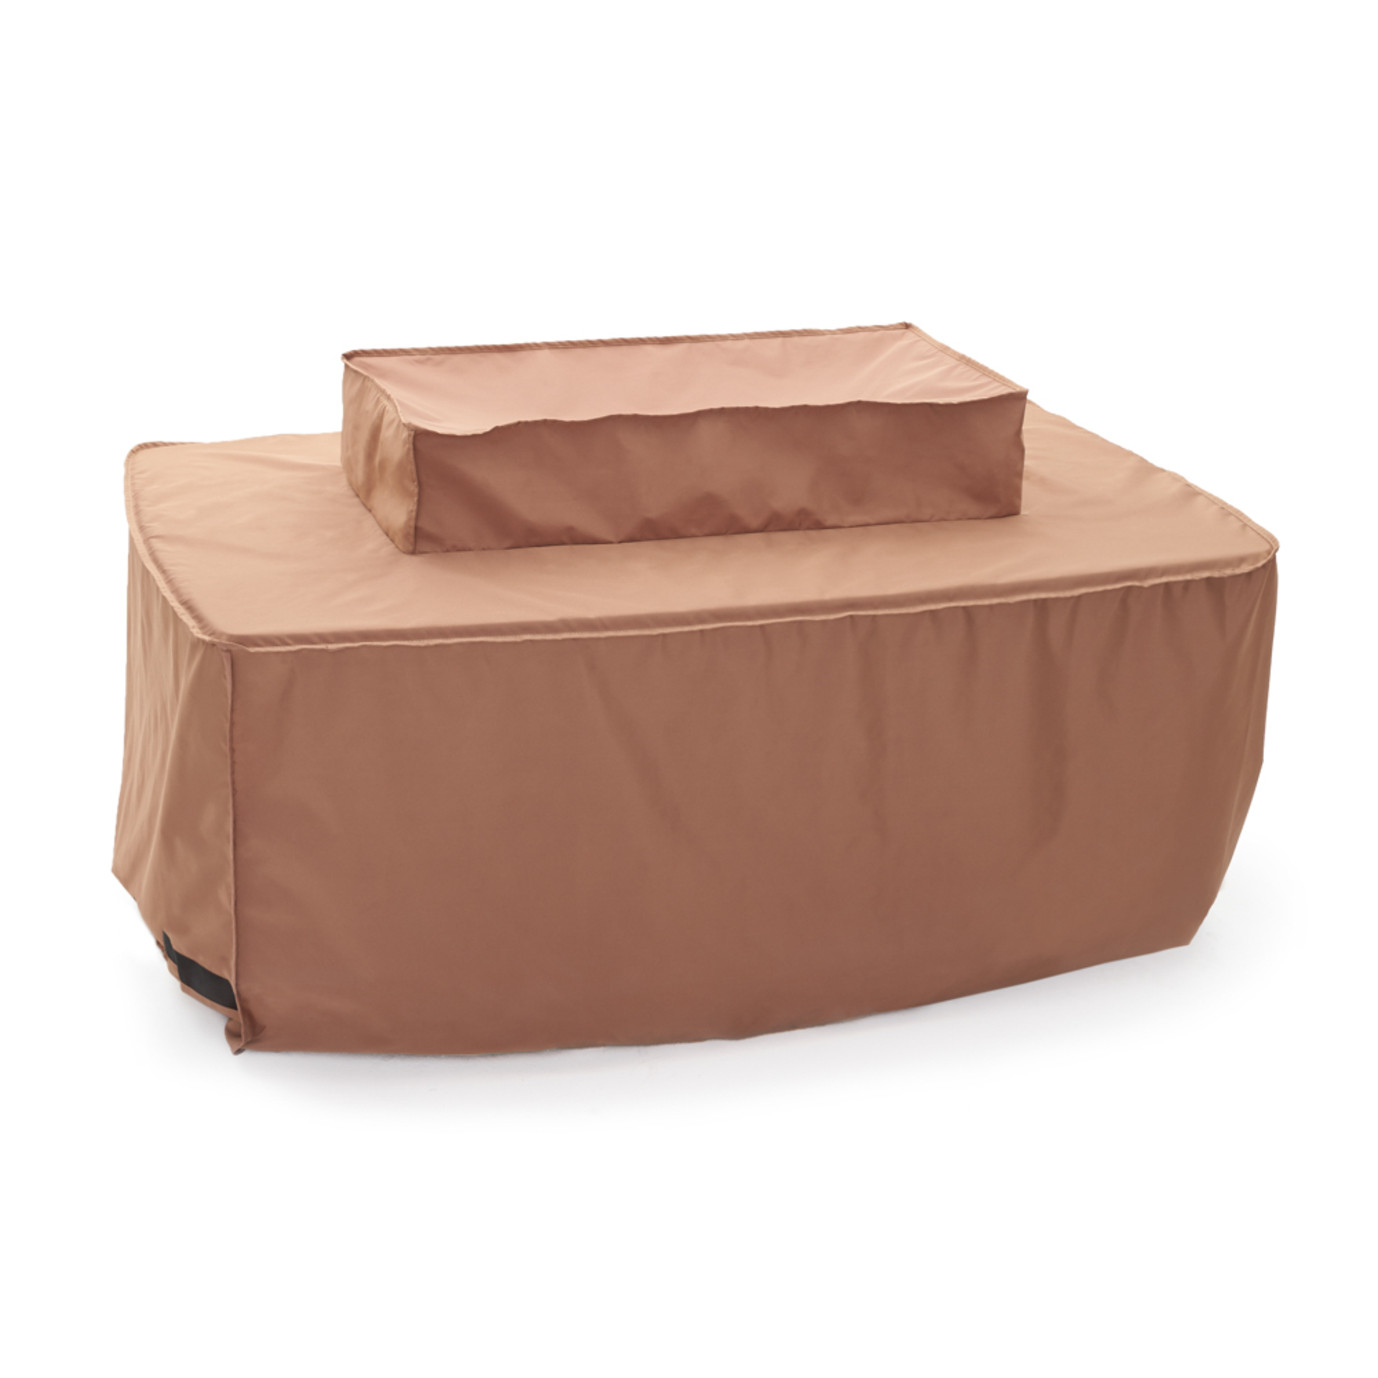 Vistano 28x58 Fire Table Furniture Cover